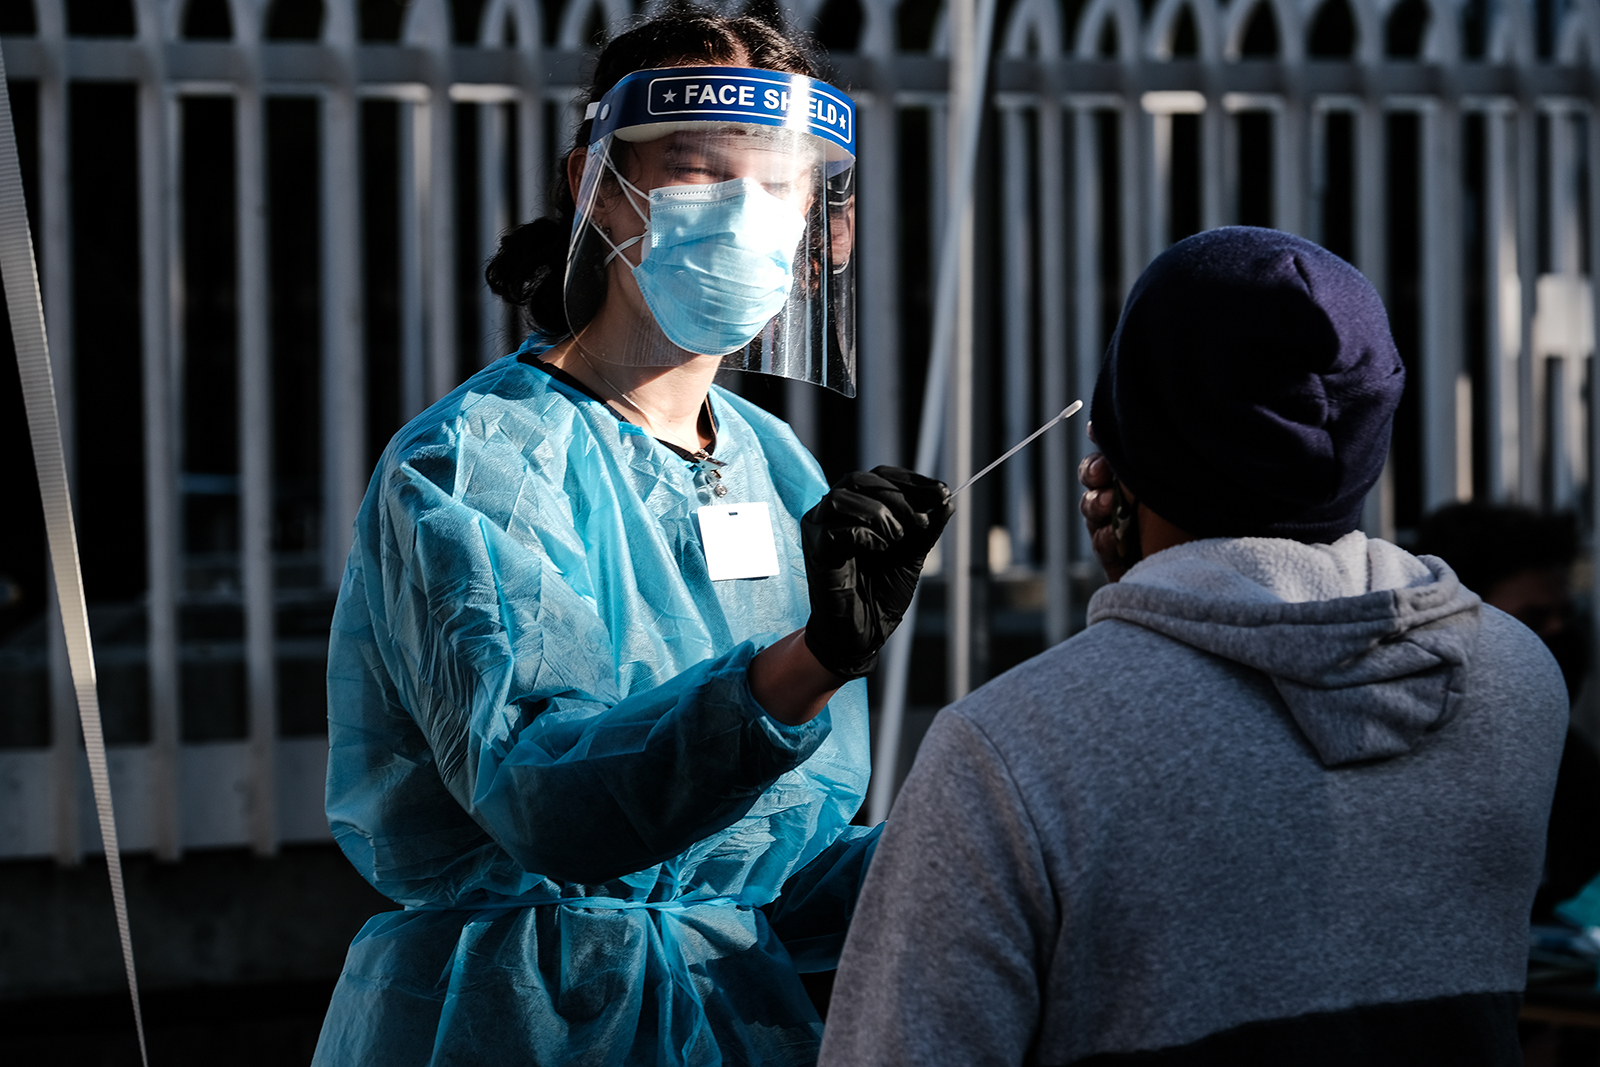 A health care worker administers a test at a Covid-19 testing tent outside a Bay Area Rapid Transit (BART) station in the Mission District of San Francisco, California, on Monday, Nov. 30.